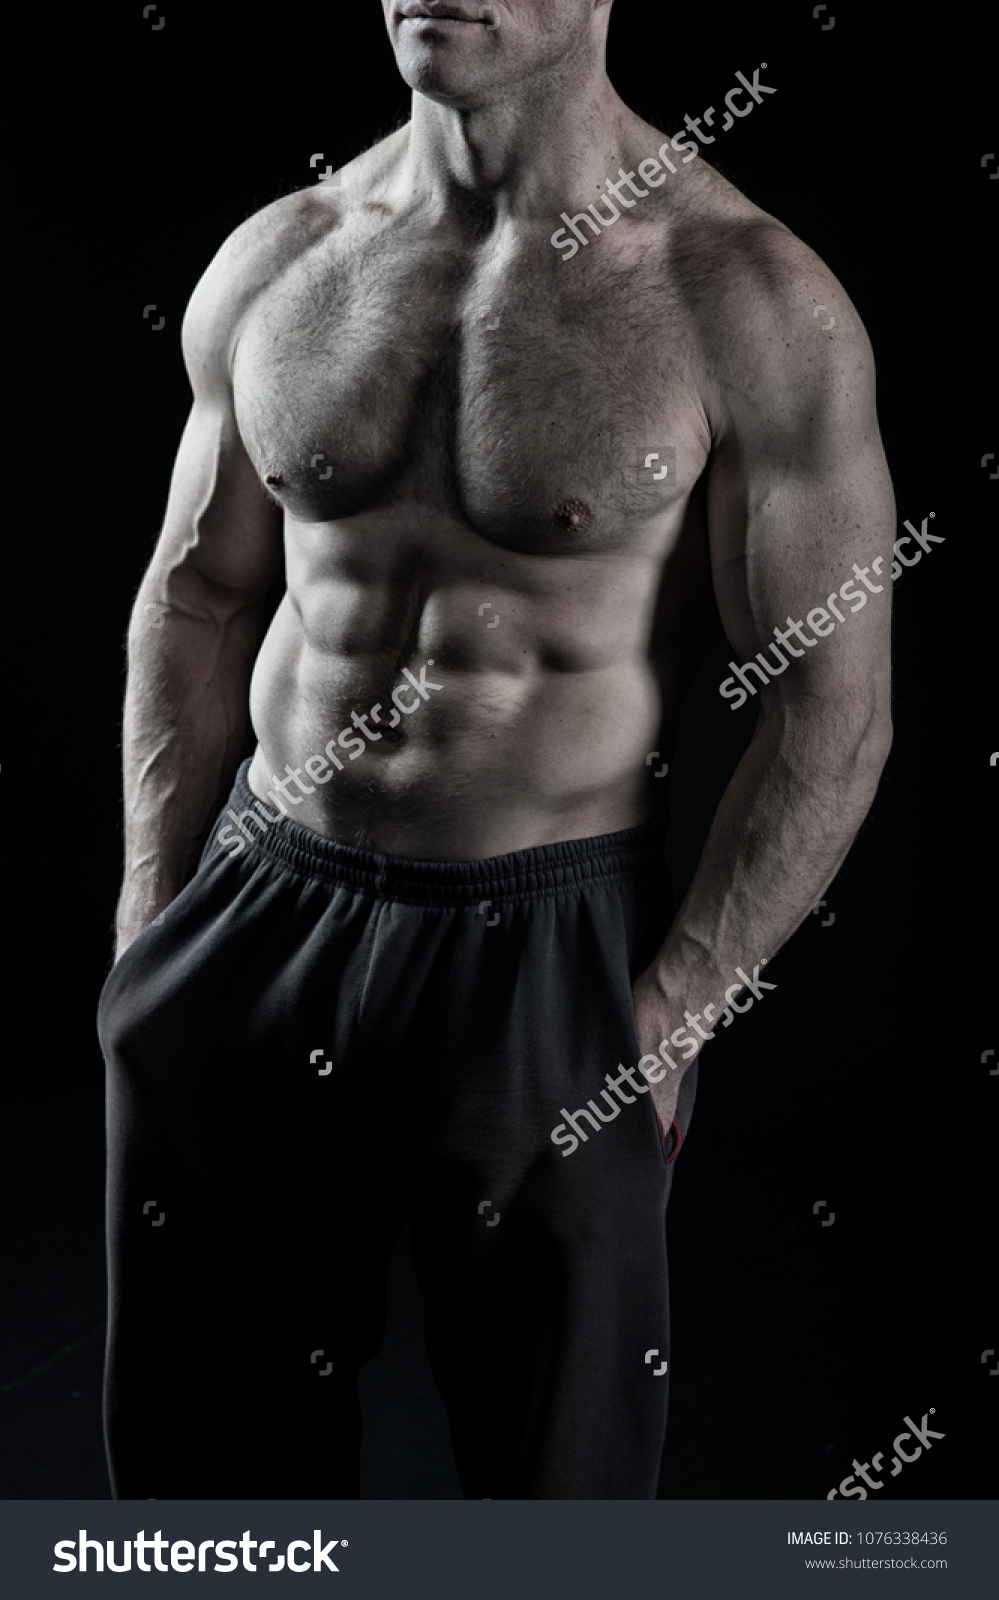 Fit Torso Six Pack Ab Muscles Stock Photo Edit Now 1076338436